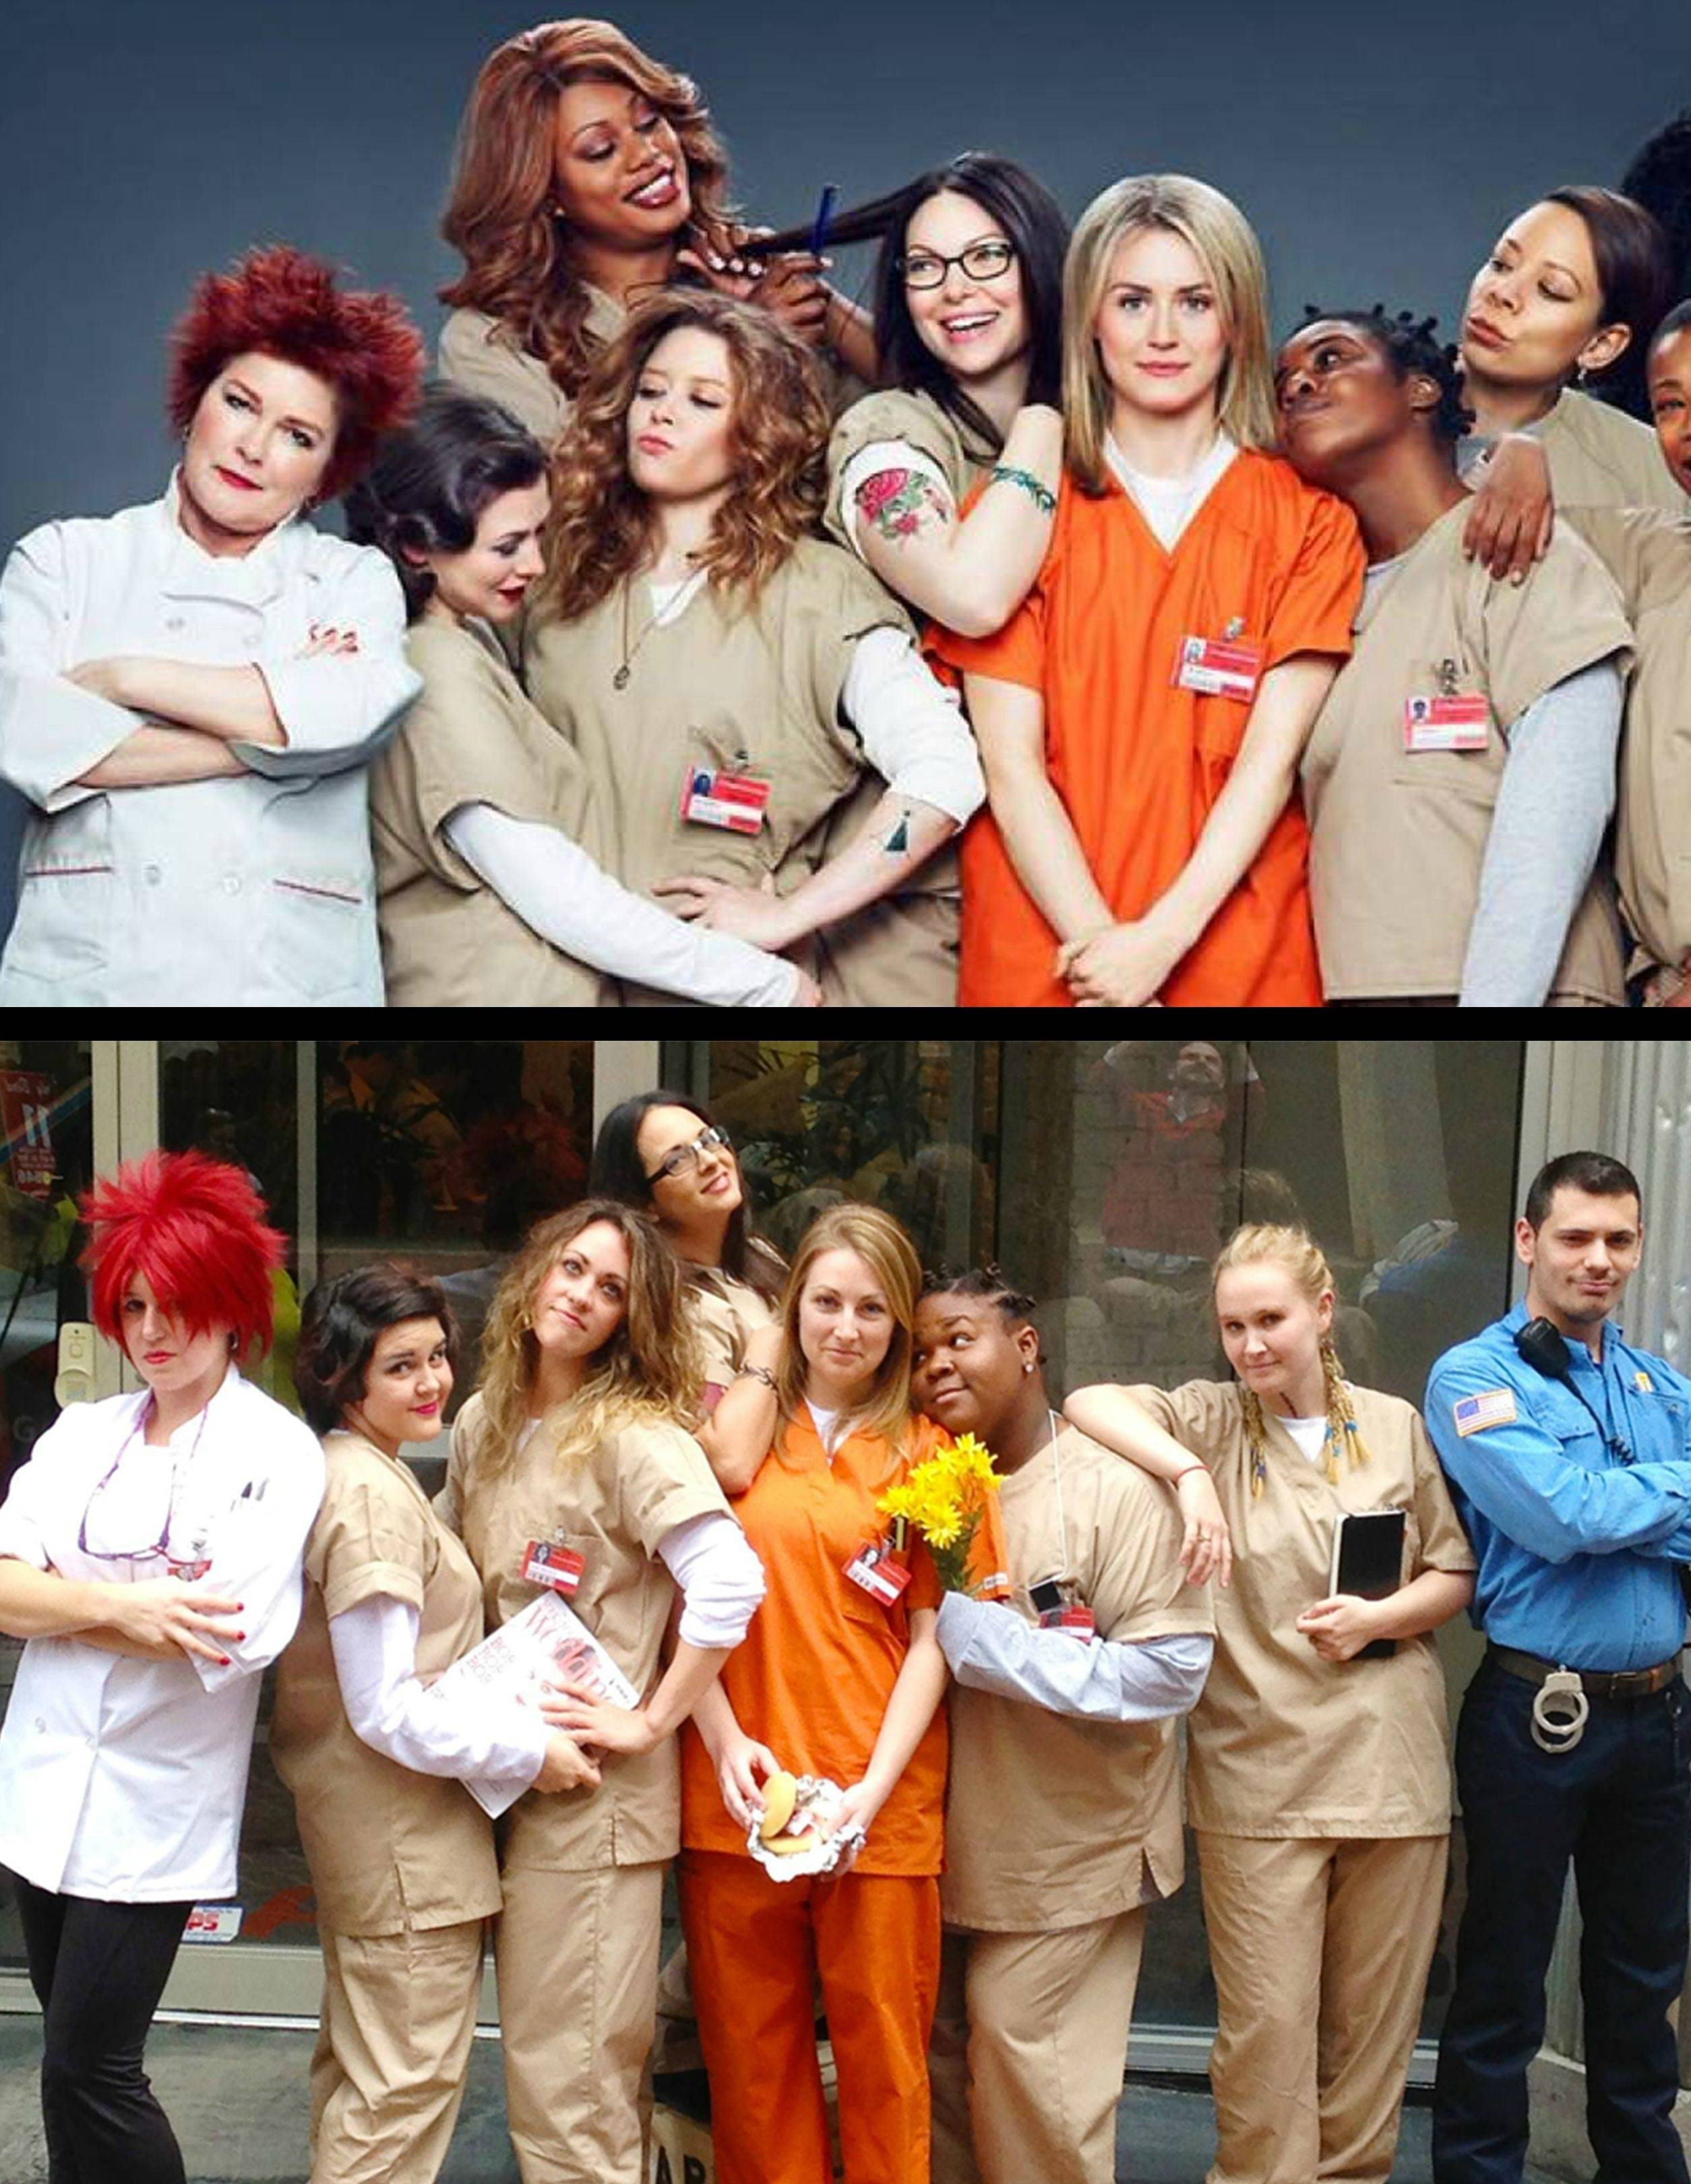 10 Gorgeous Halloween Costume Ideas For Groups great halloween costume ideas for you and your crew music 6 2020